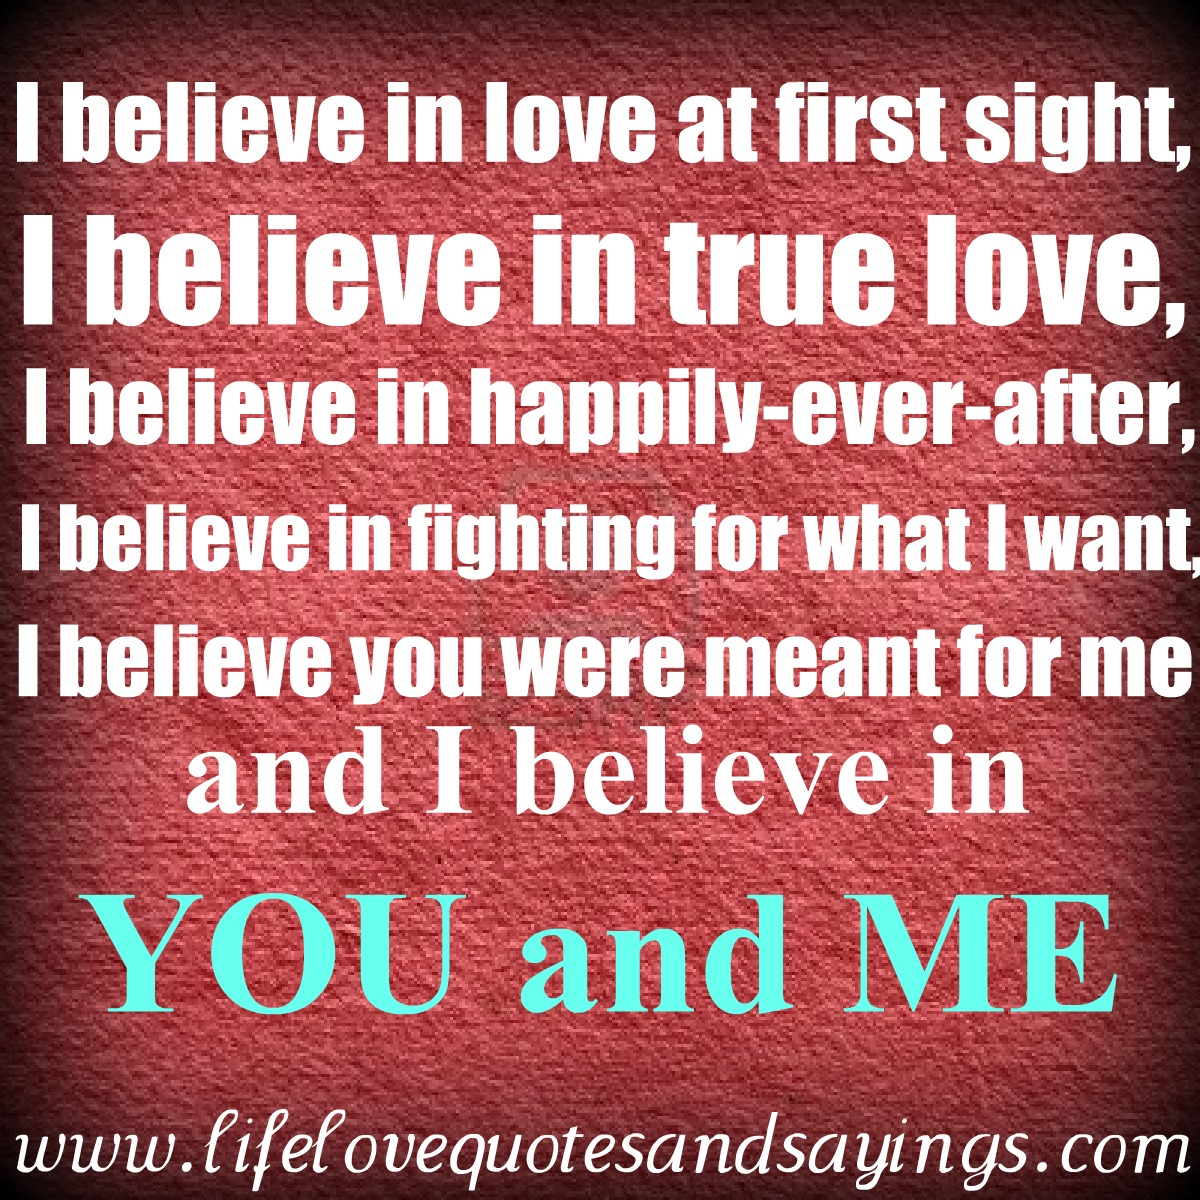 Love Quotes About Life: Believe Quotes And Poems. QuotesGram